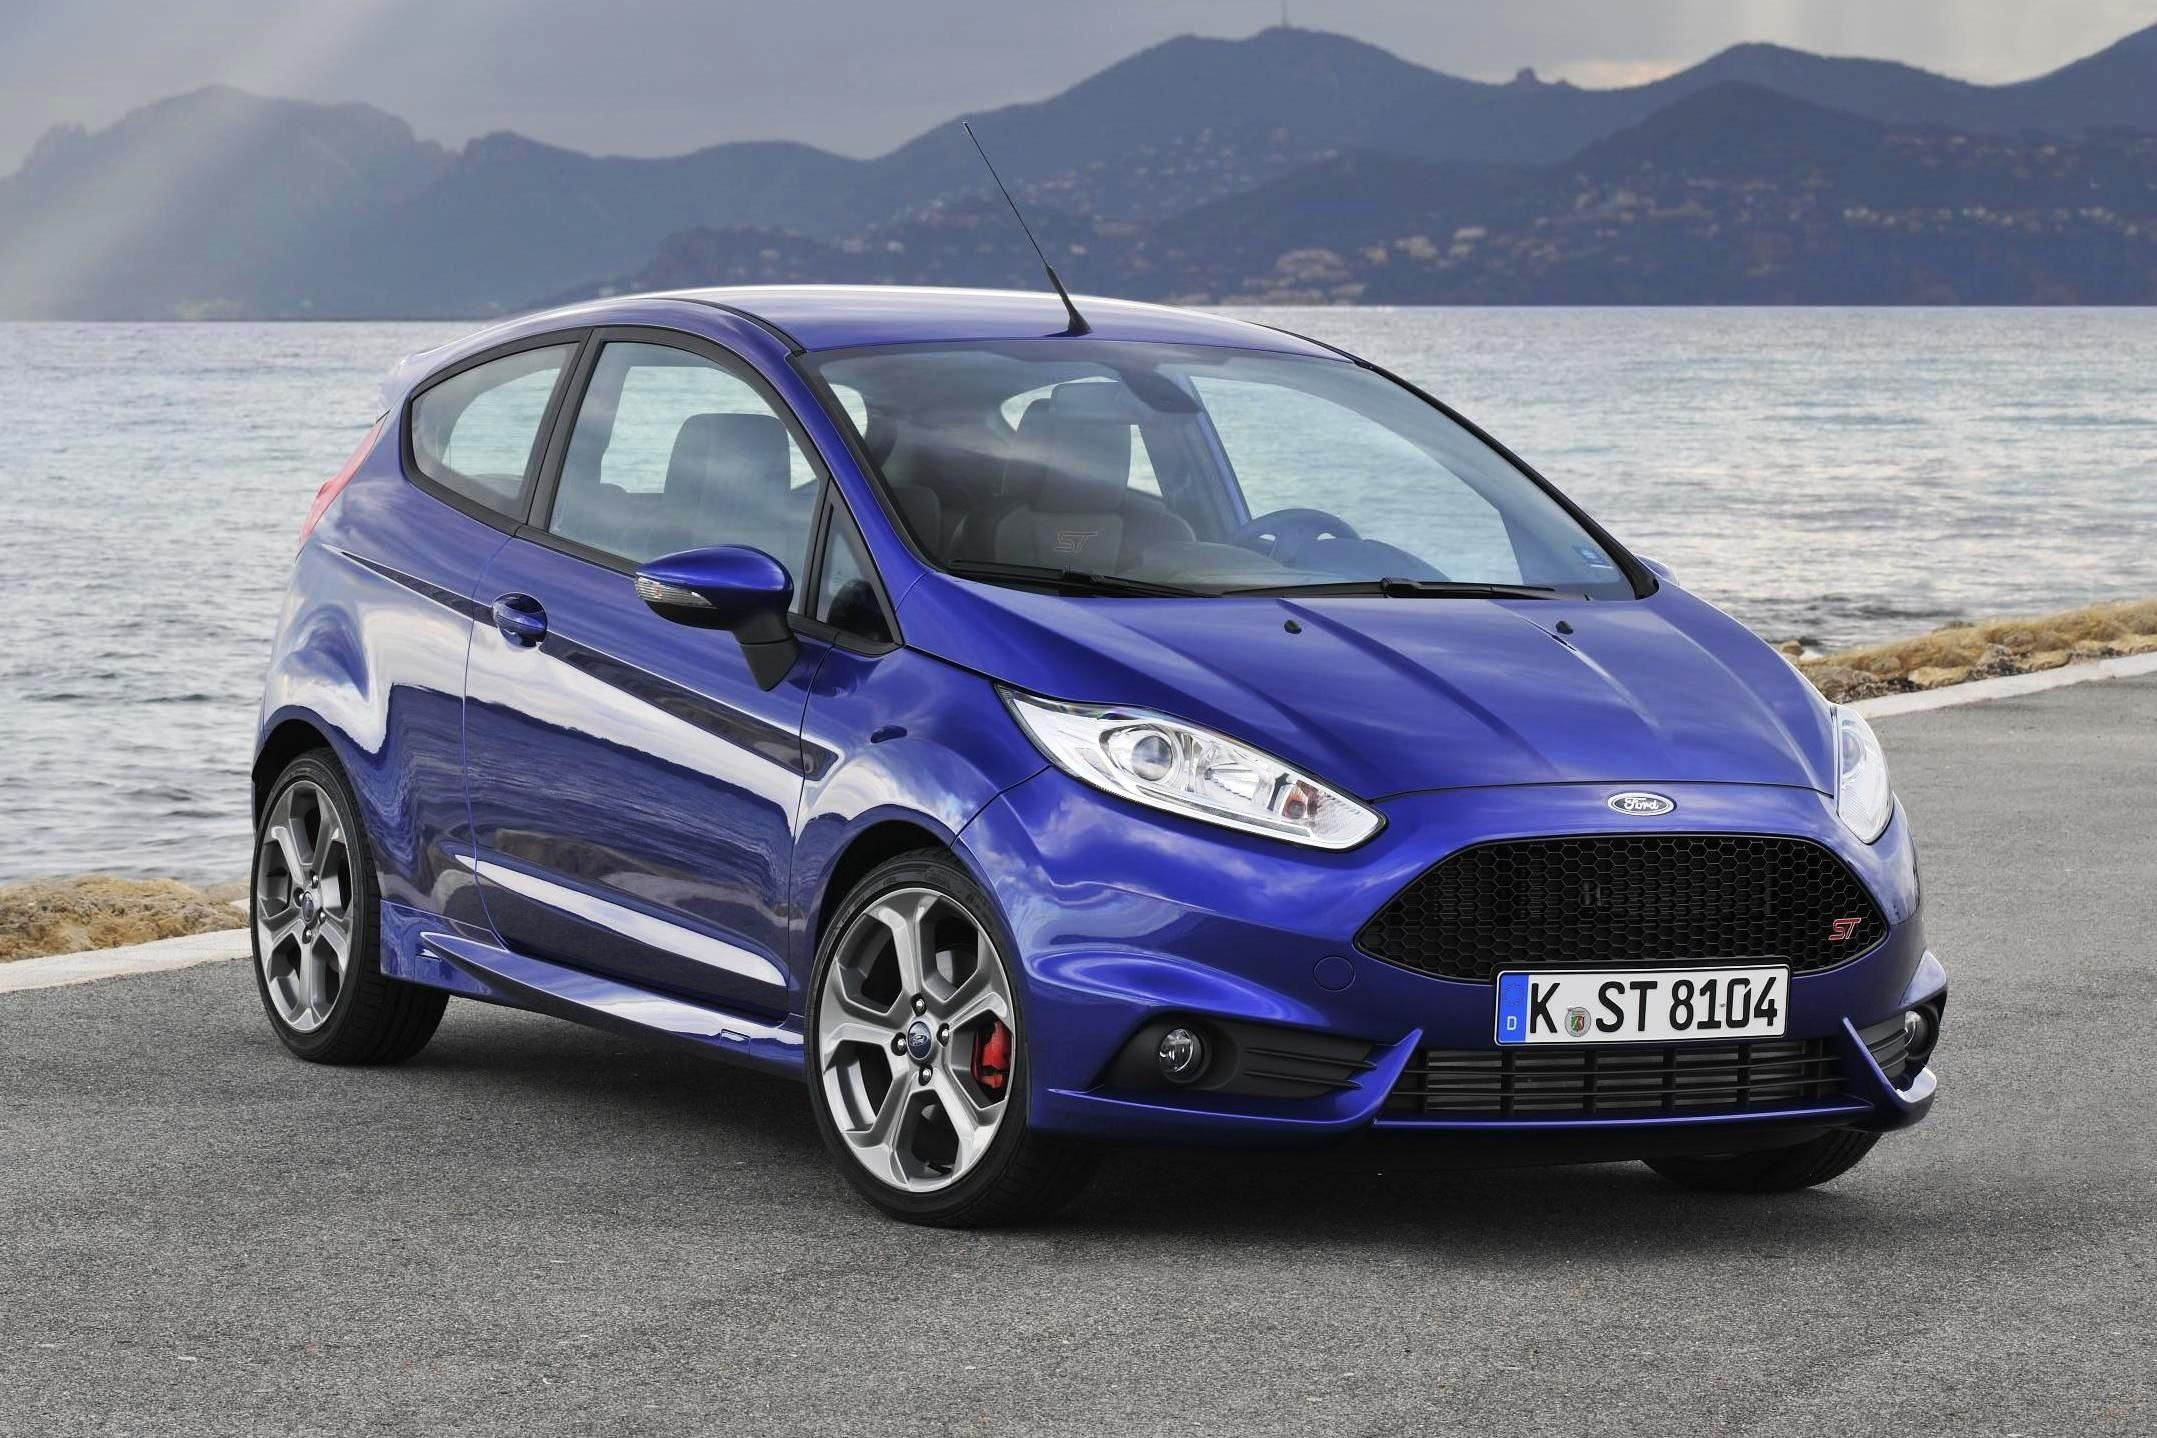 2015 Ford Fiesta St Amazing In Everyway The Fiesta St Delivers A